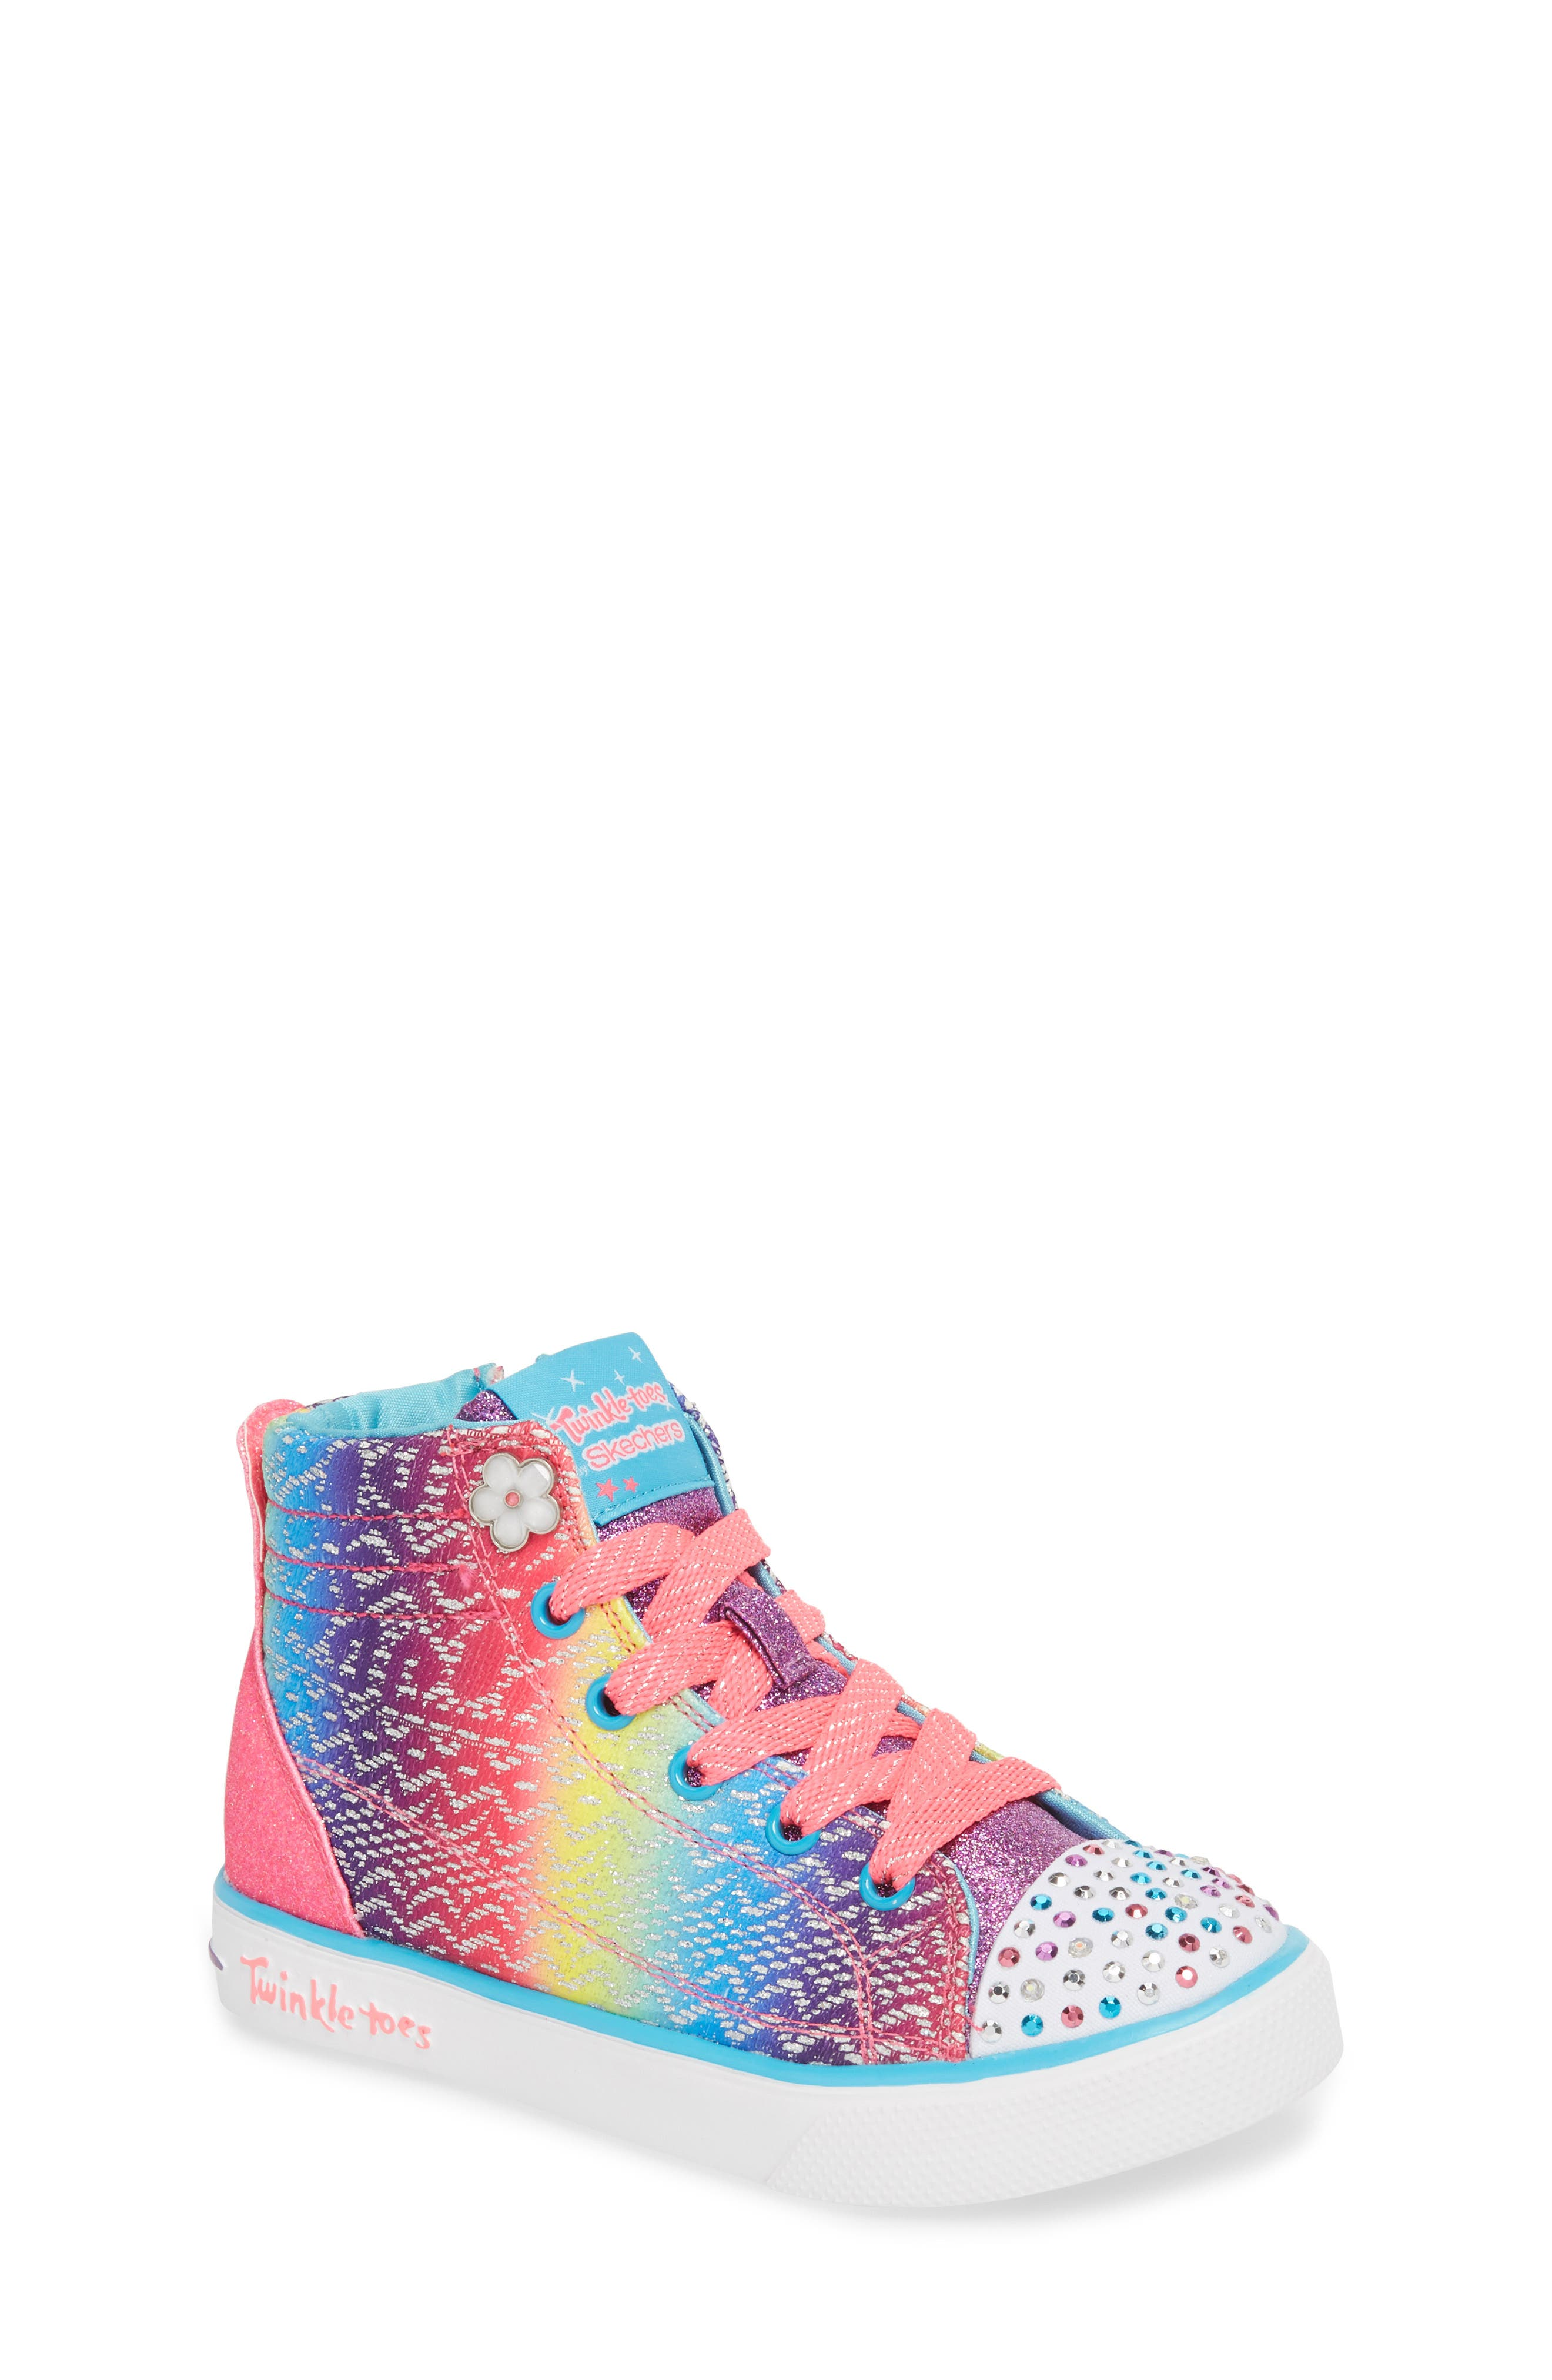 Twinkle Toes Breeze 2.0 Light-Up High Top Sneaker,                             Main thumbnail 1, color,                             484